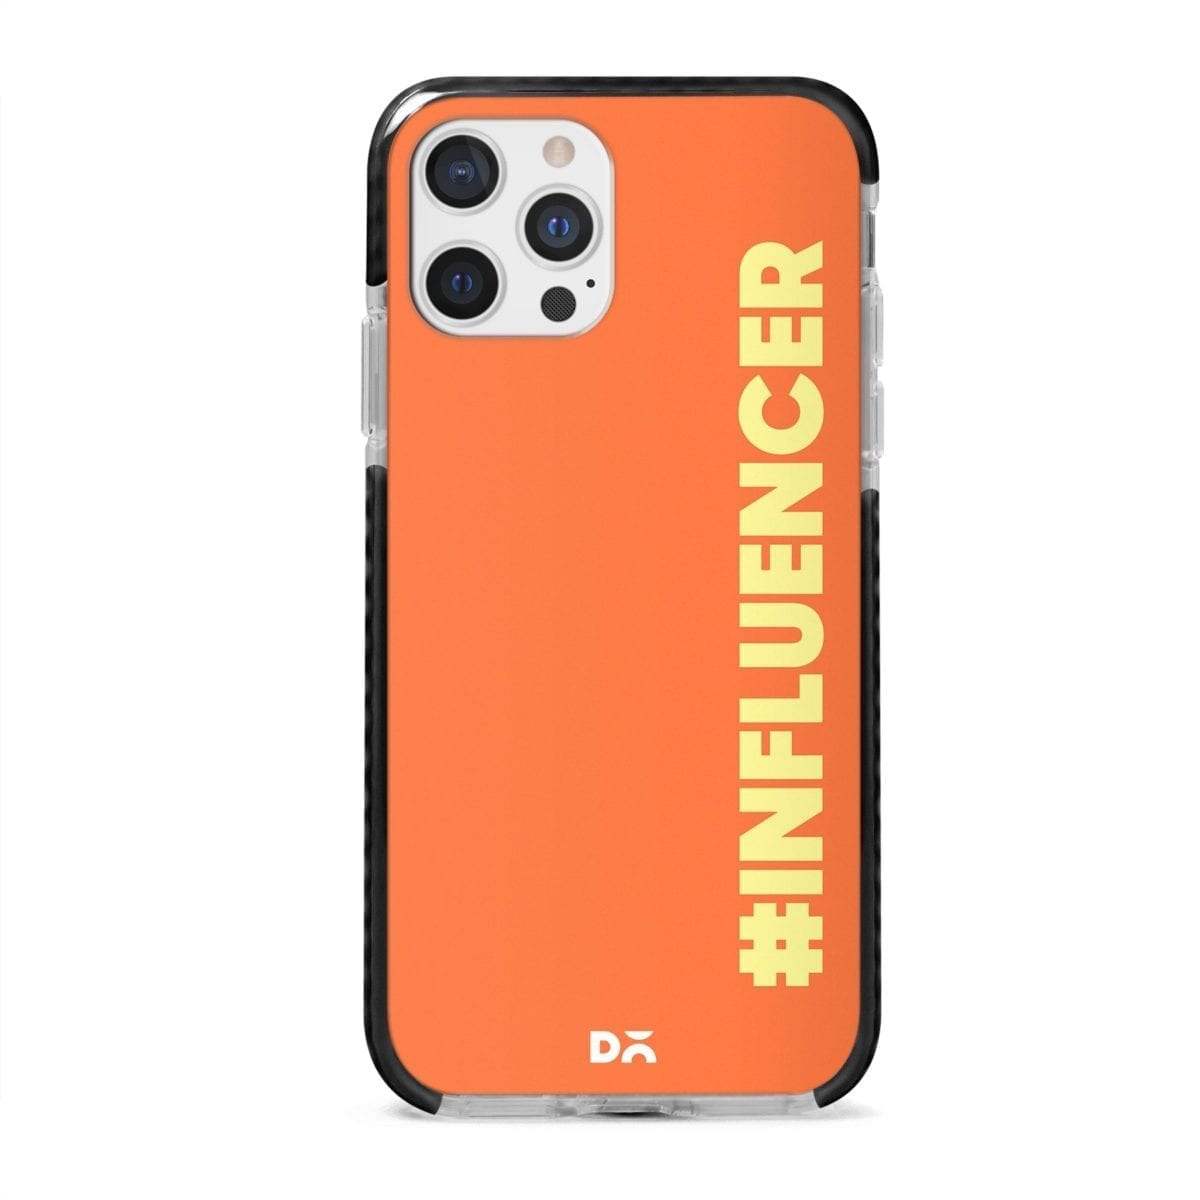 Influencer Stride Case Cover for Apple iPhone 12 Pro and Apple iPhone 12 Pro Max with great design and shock proof | Klippik | Online Shopping | Kuwait UAE Saudi